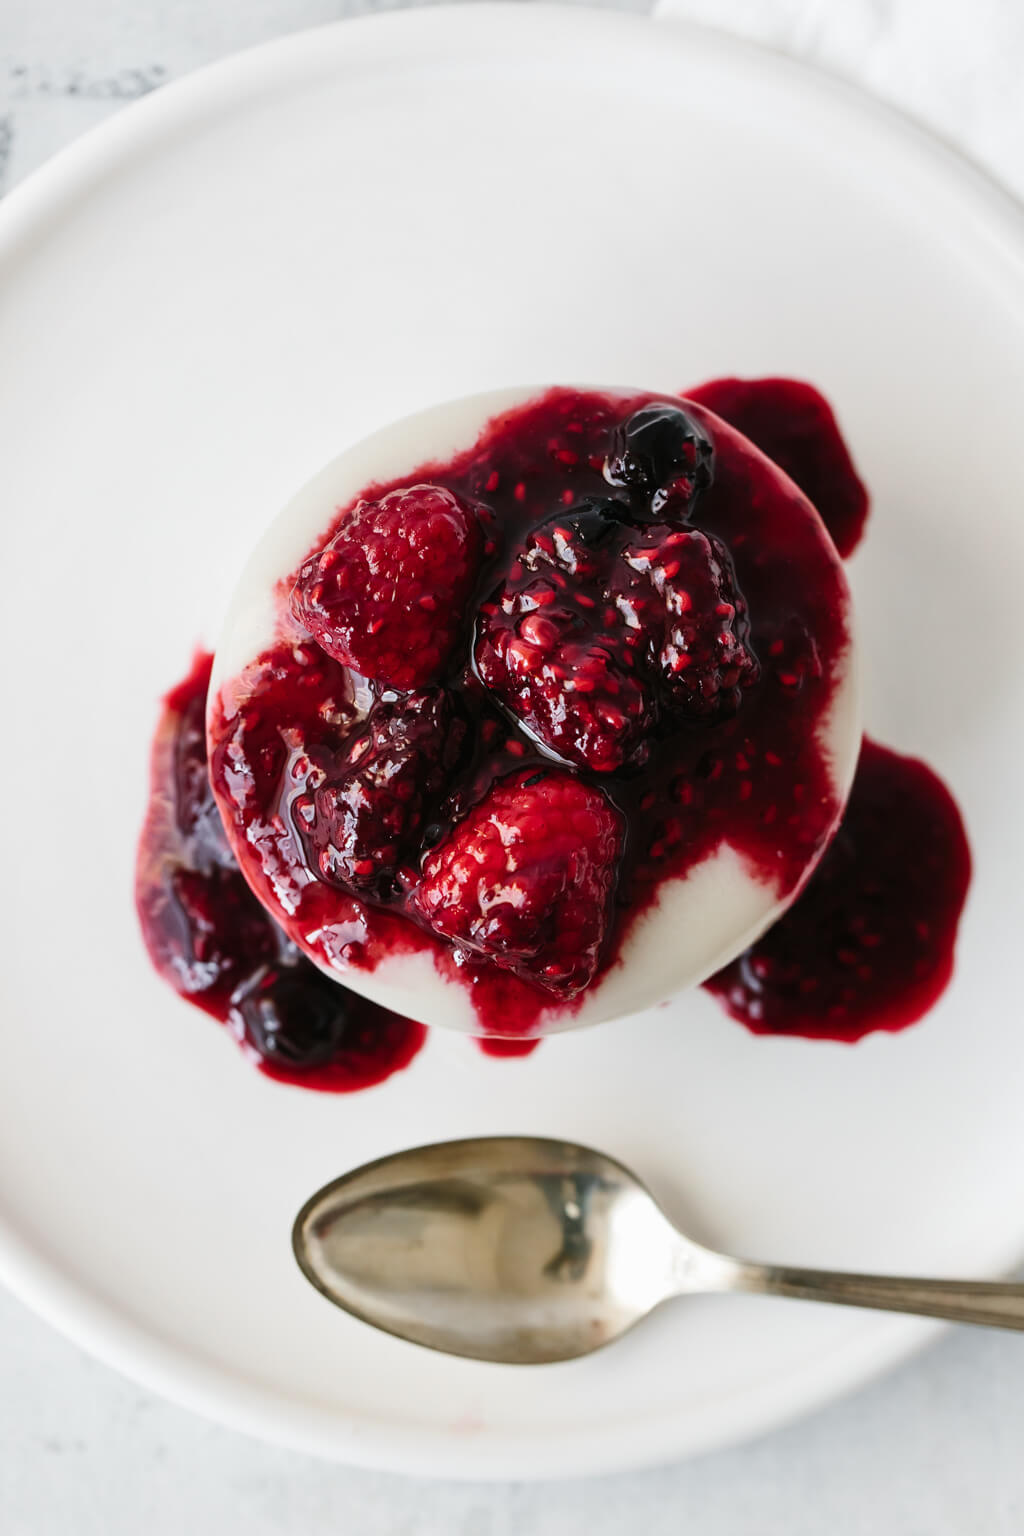 A creamy, dairy-free, coconut panna cotta that's topped with slightly boozy macerated berries. A delicious dessert recipe!